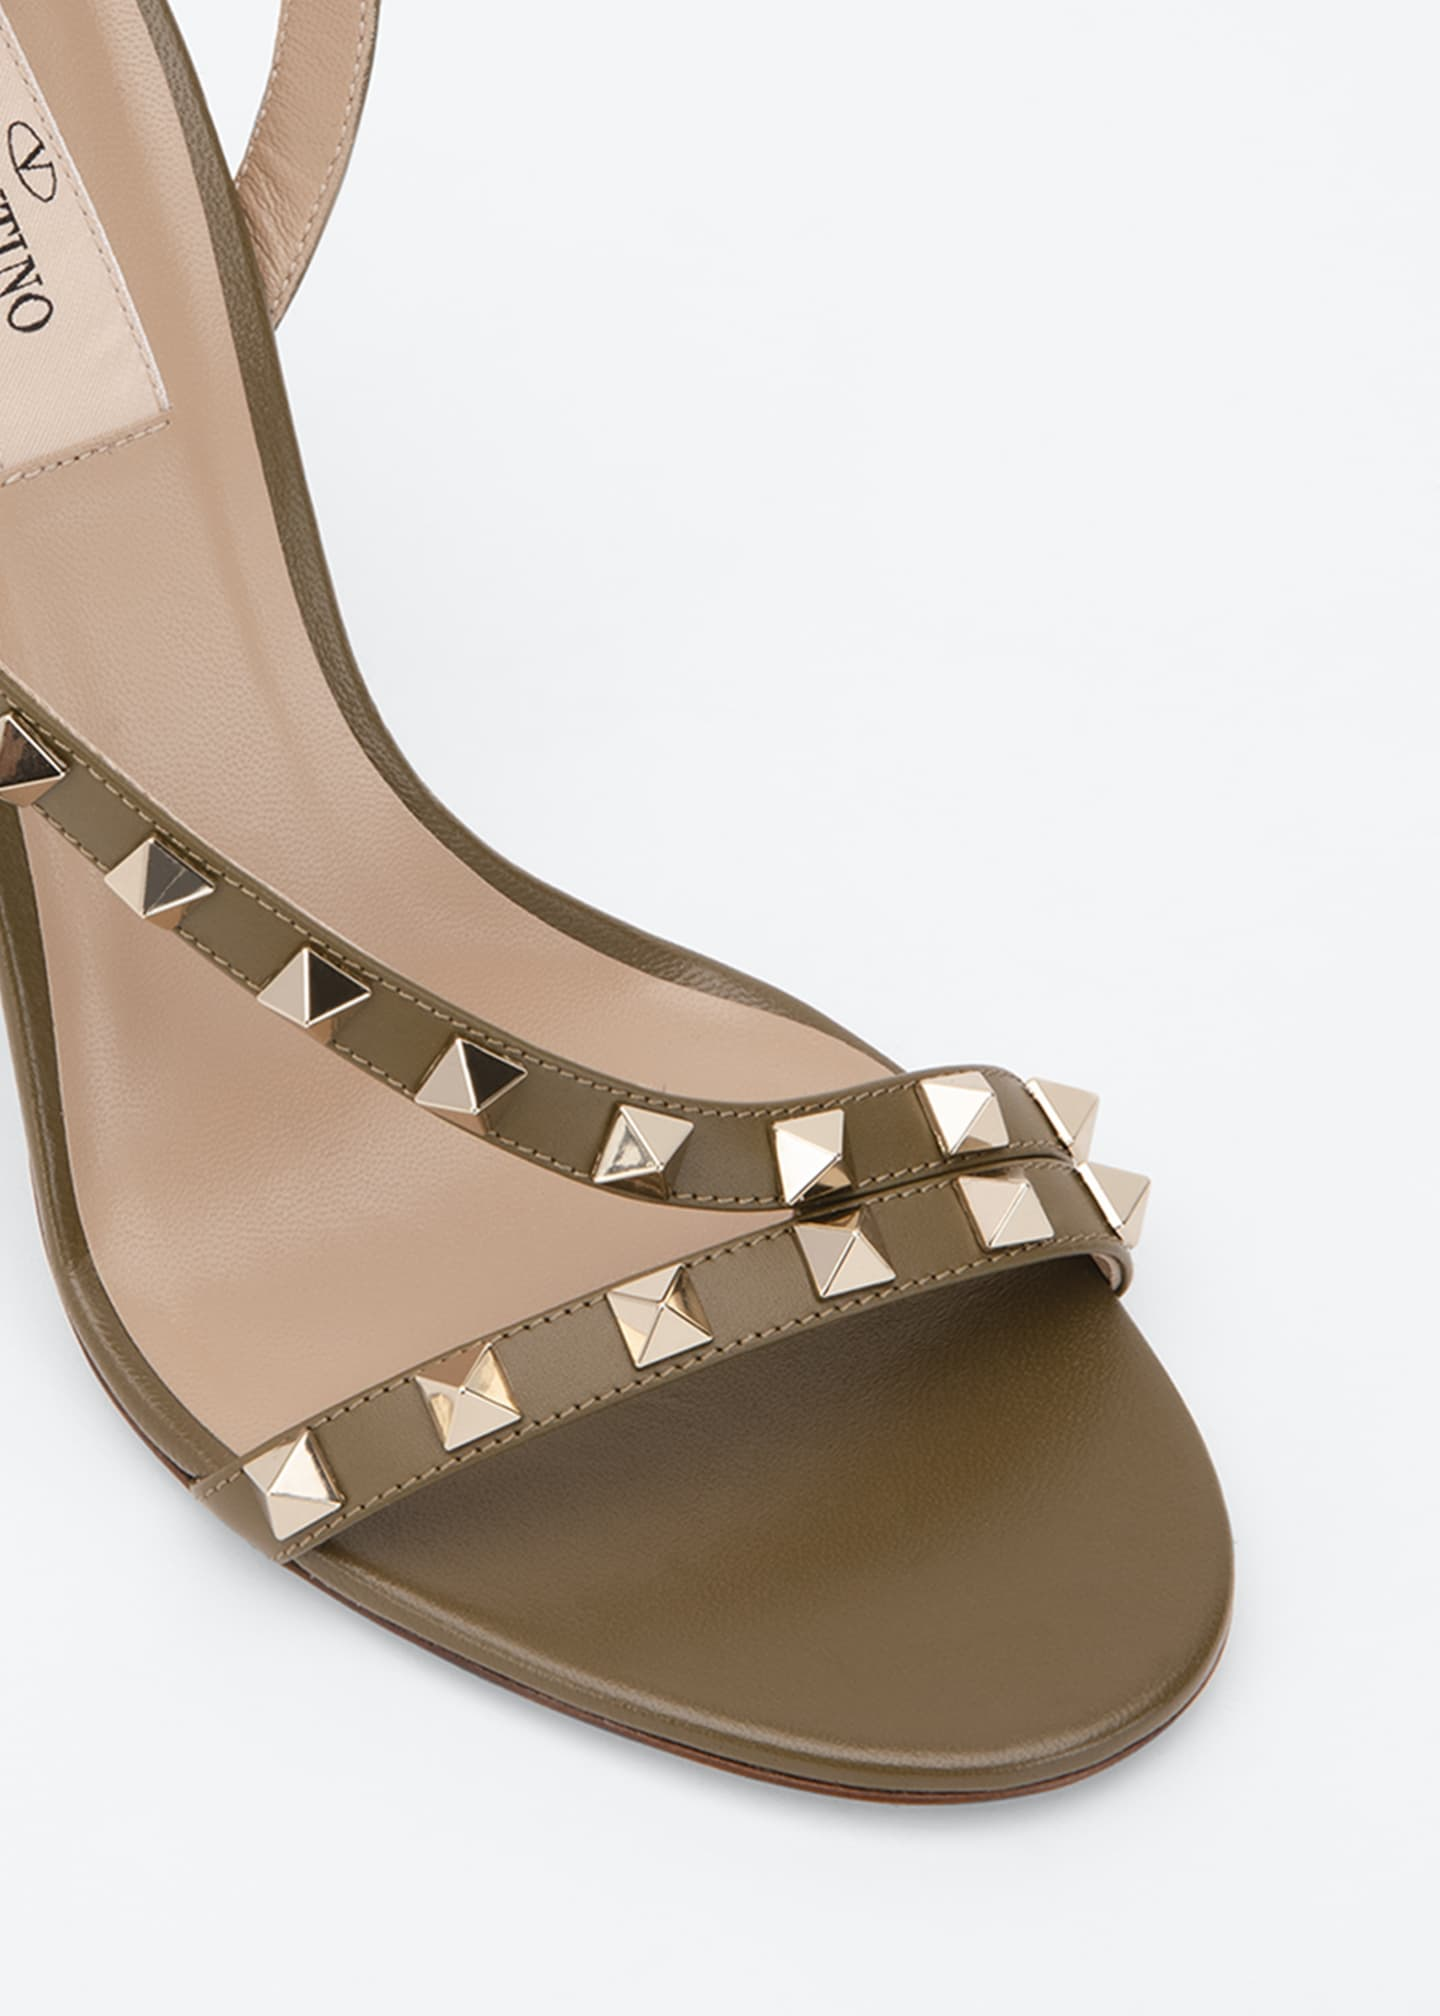 Image 3 of 3: Rockstud 100mm Asymmetric Ankle-Strap Sandal